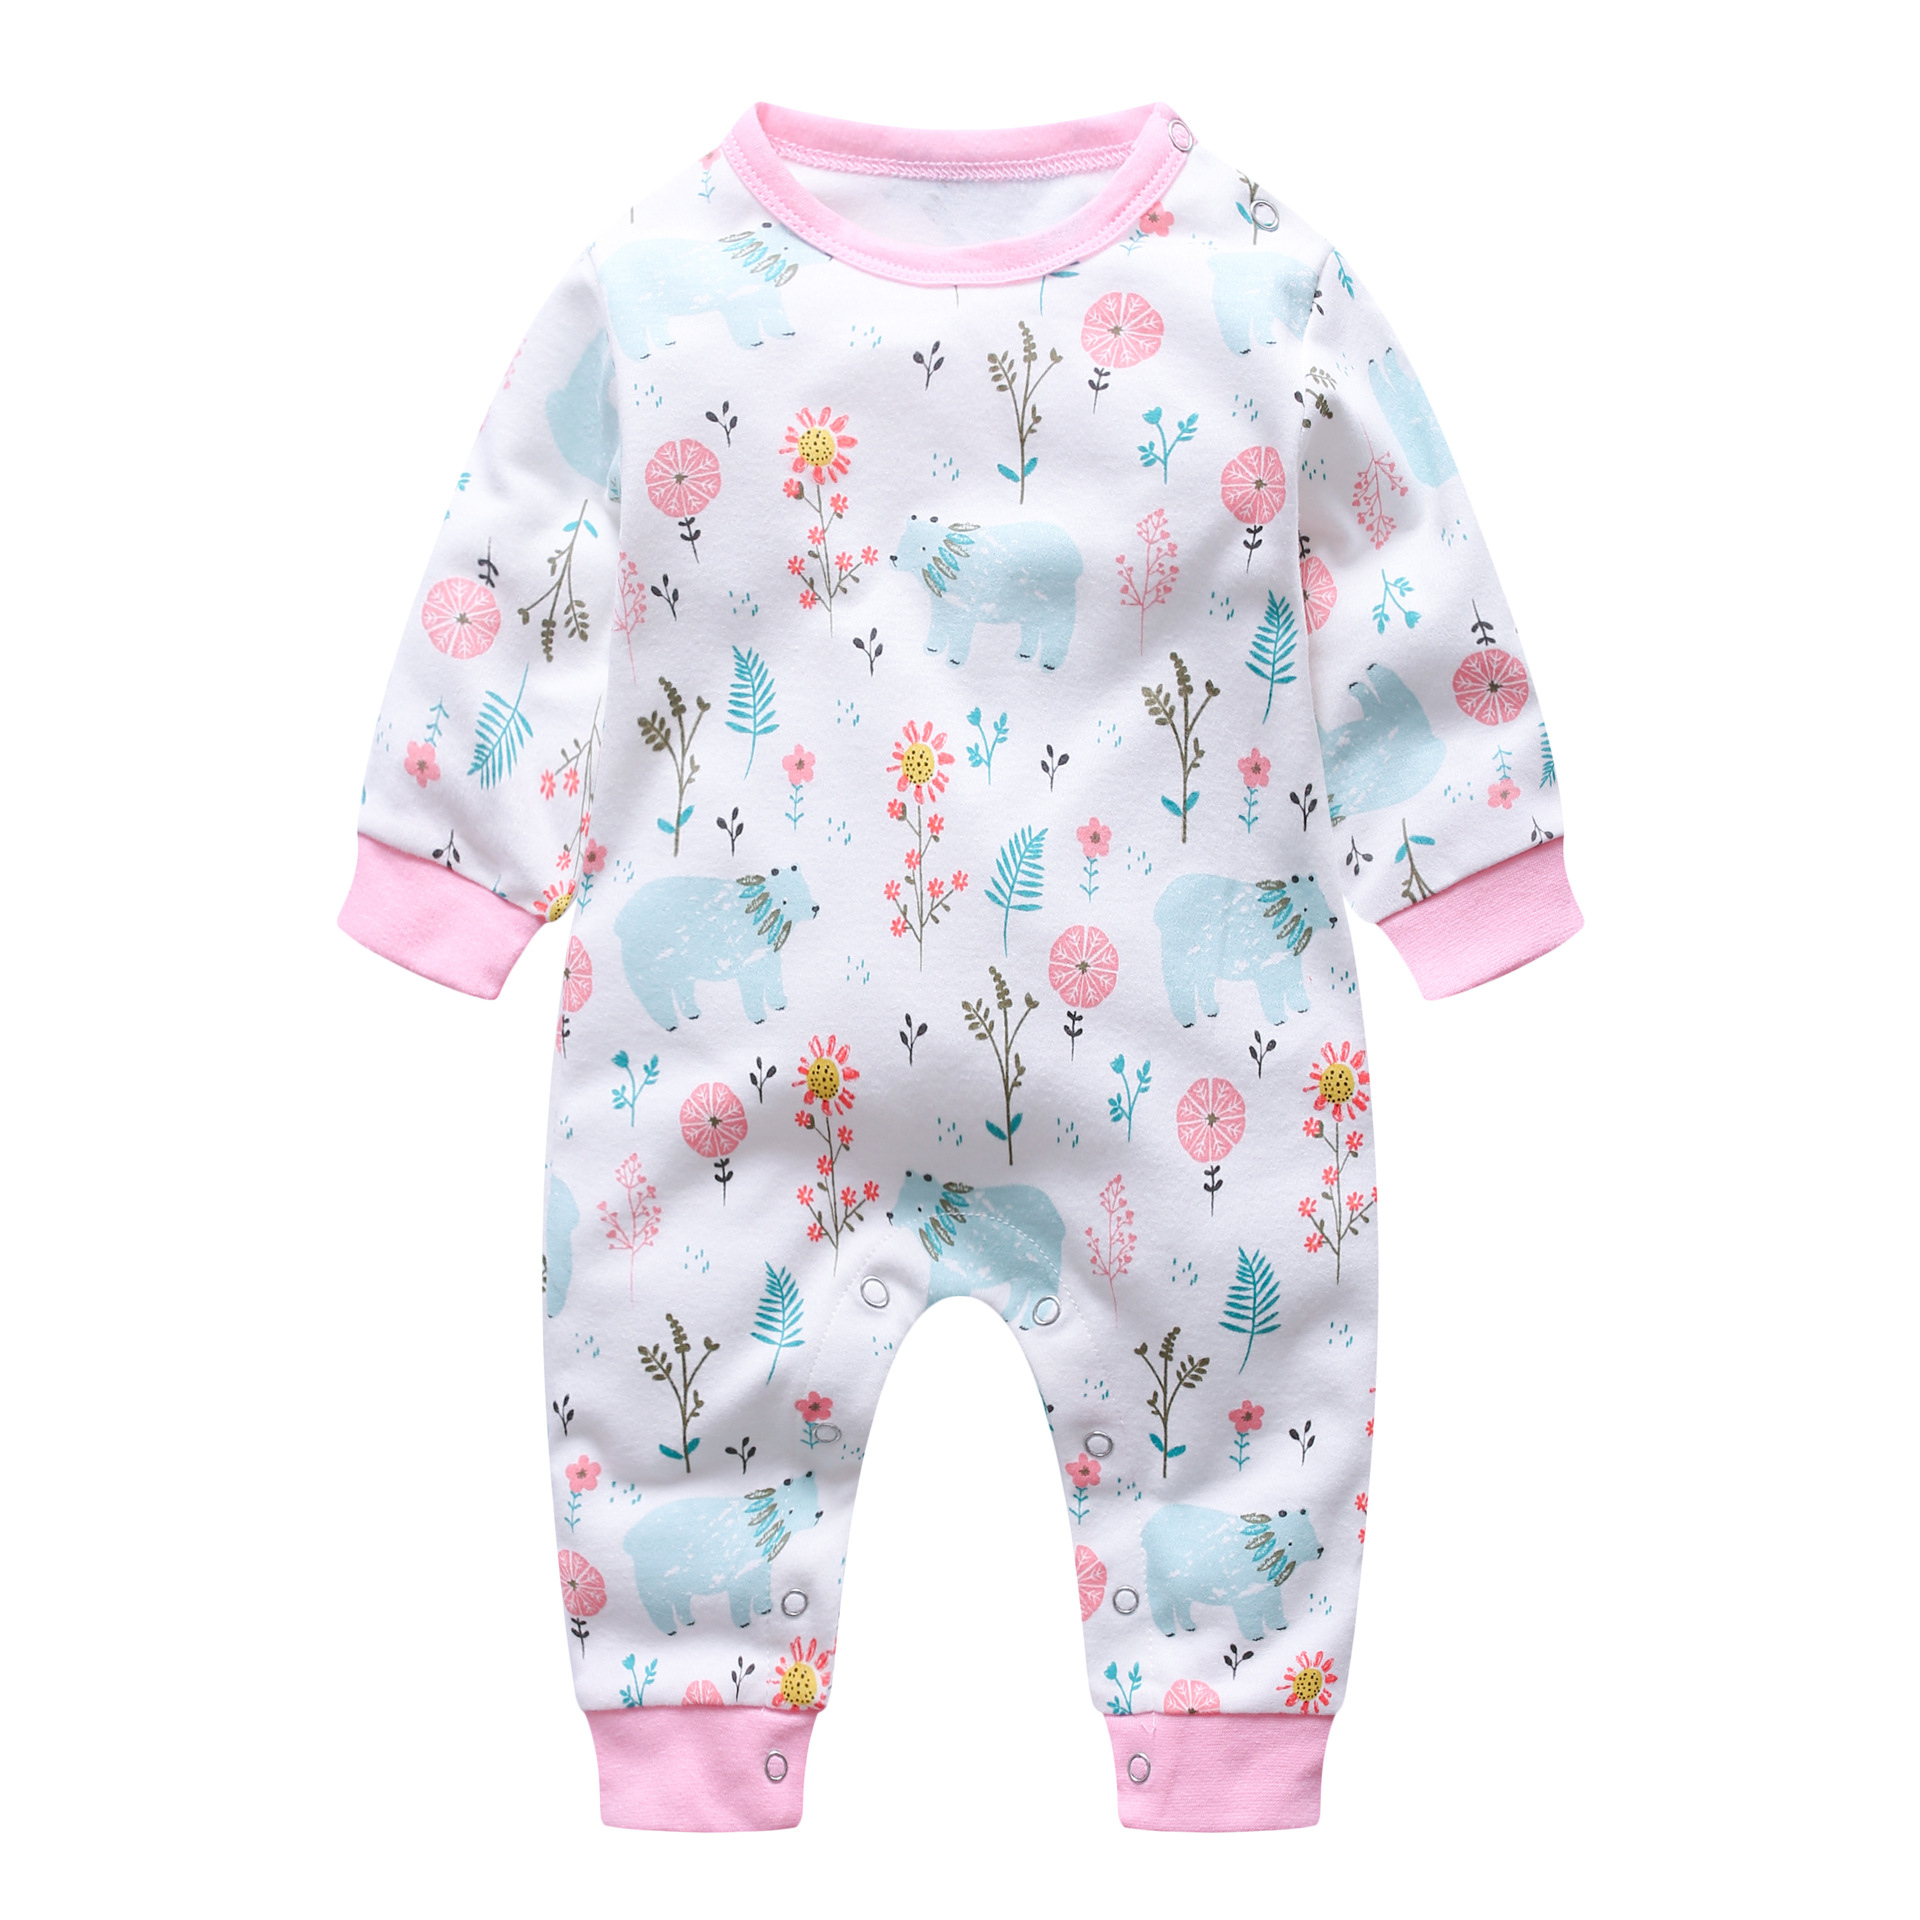 2018 new style Autumn cotton Baby   Rompers   Fashion print Newborn Clothing Long Sleeve Jumpsuits baby Boys Girls Outerwear